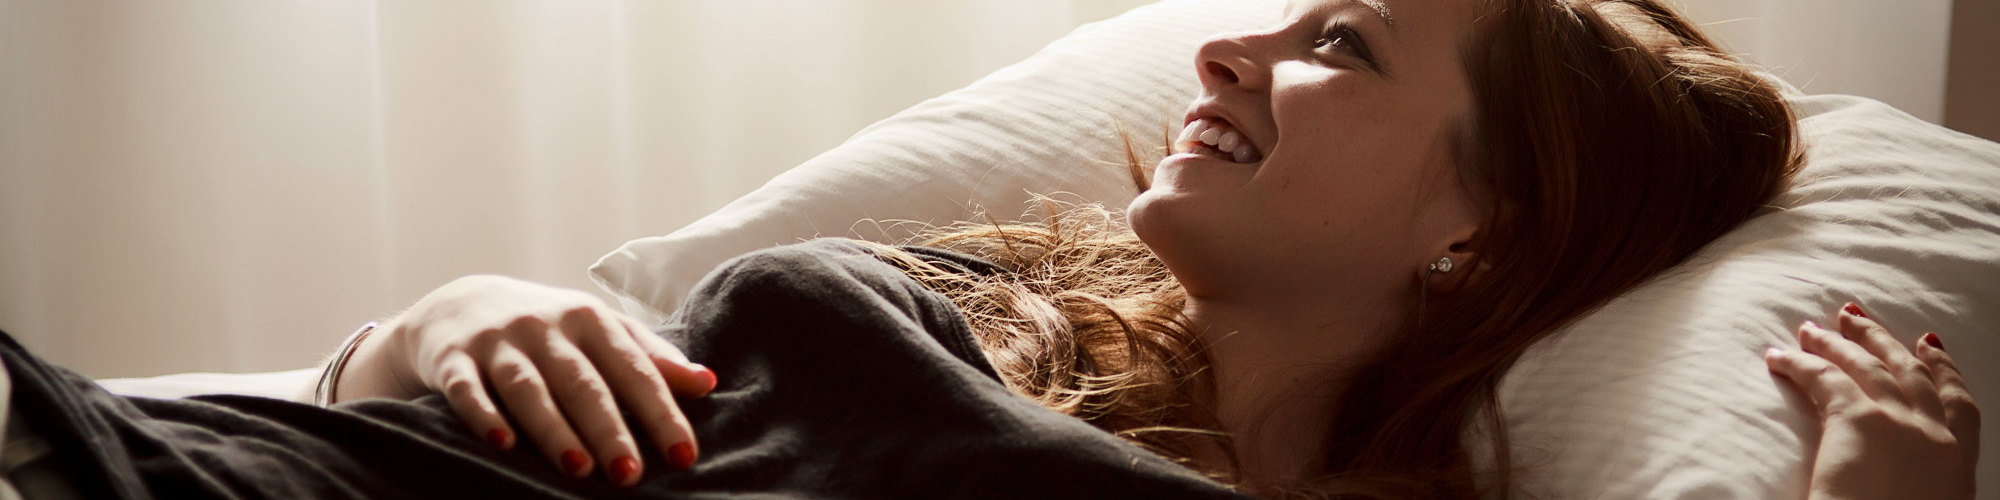 Young woman stretched out on a bed